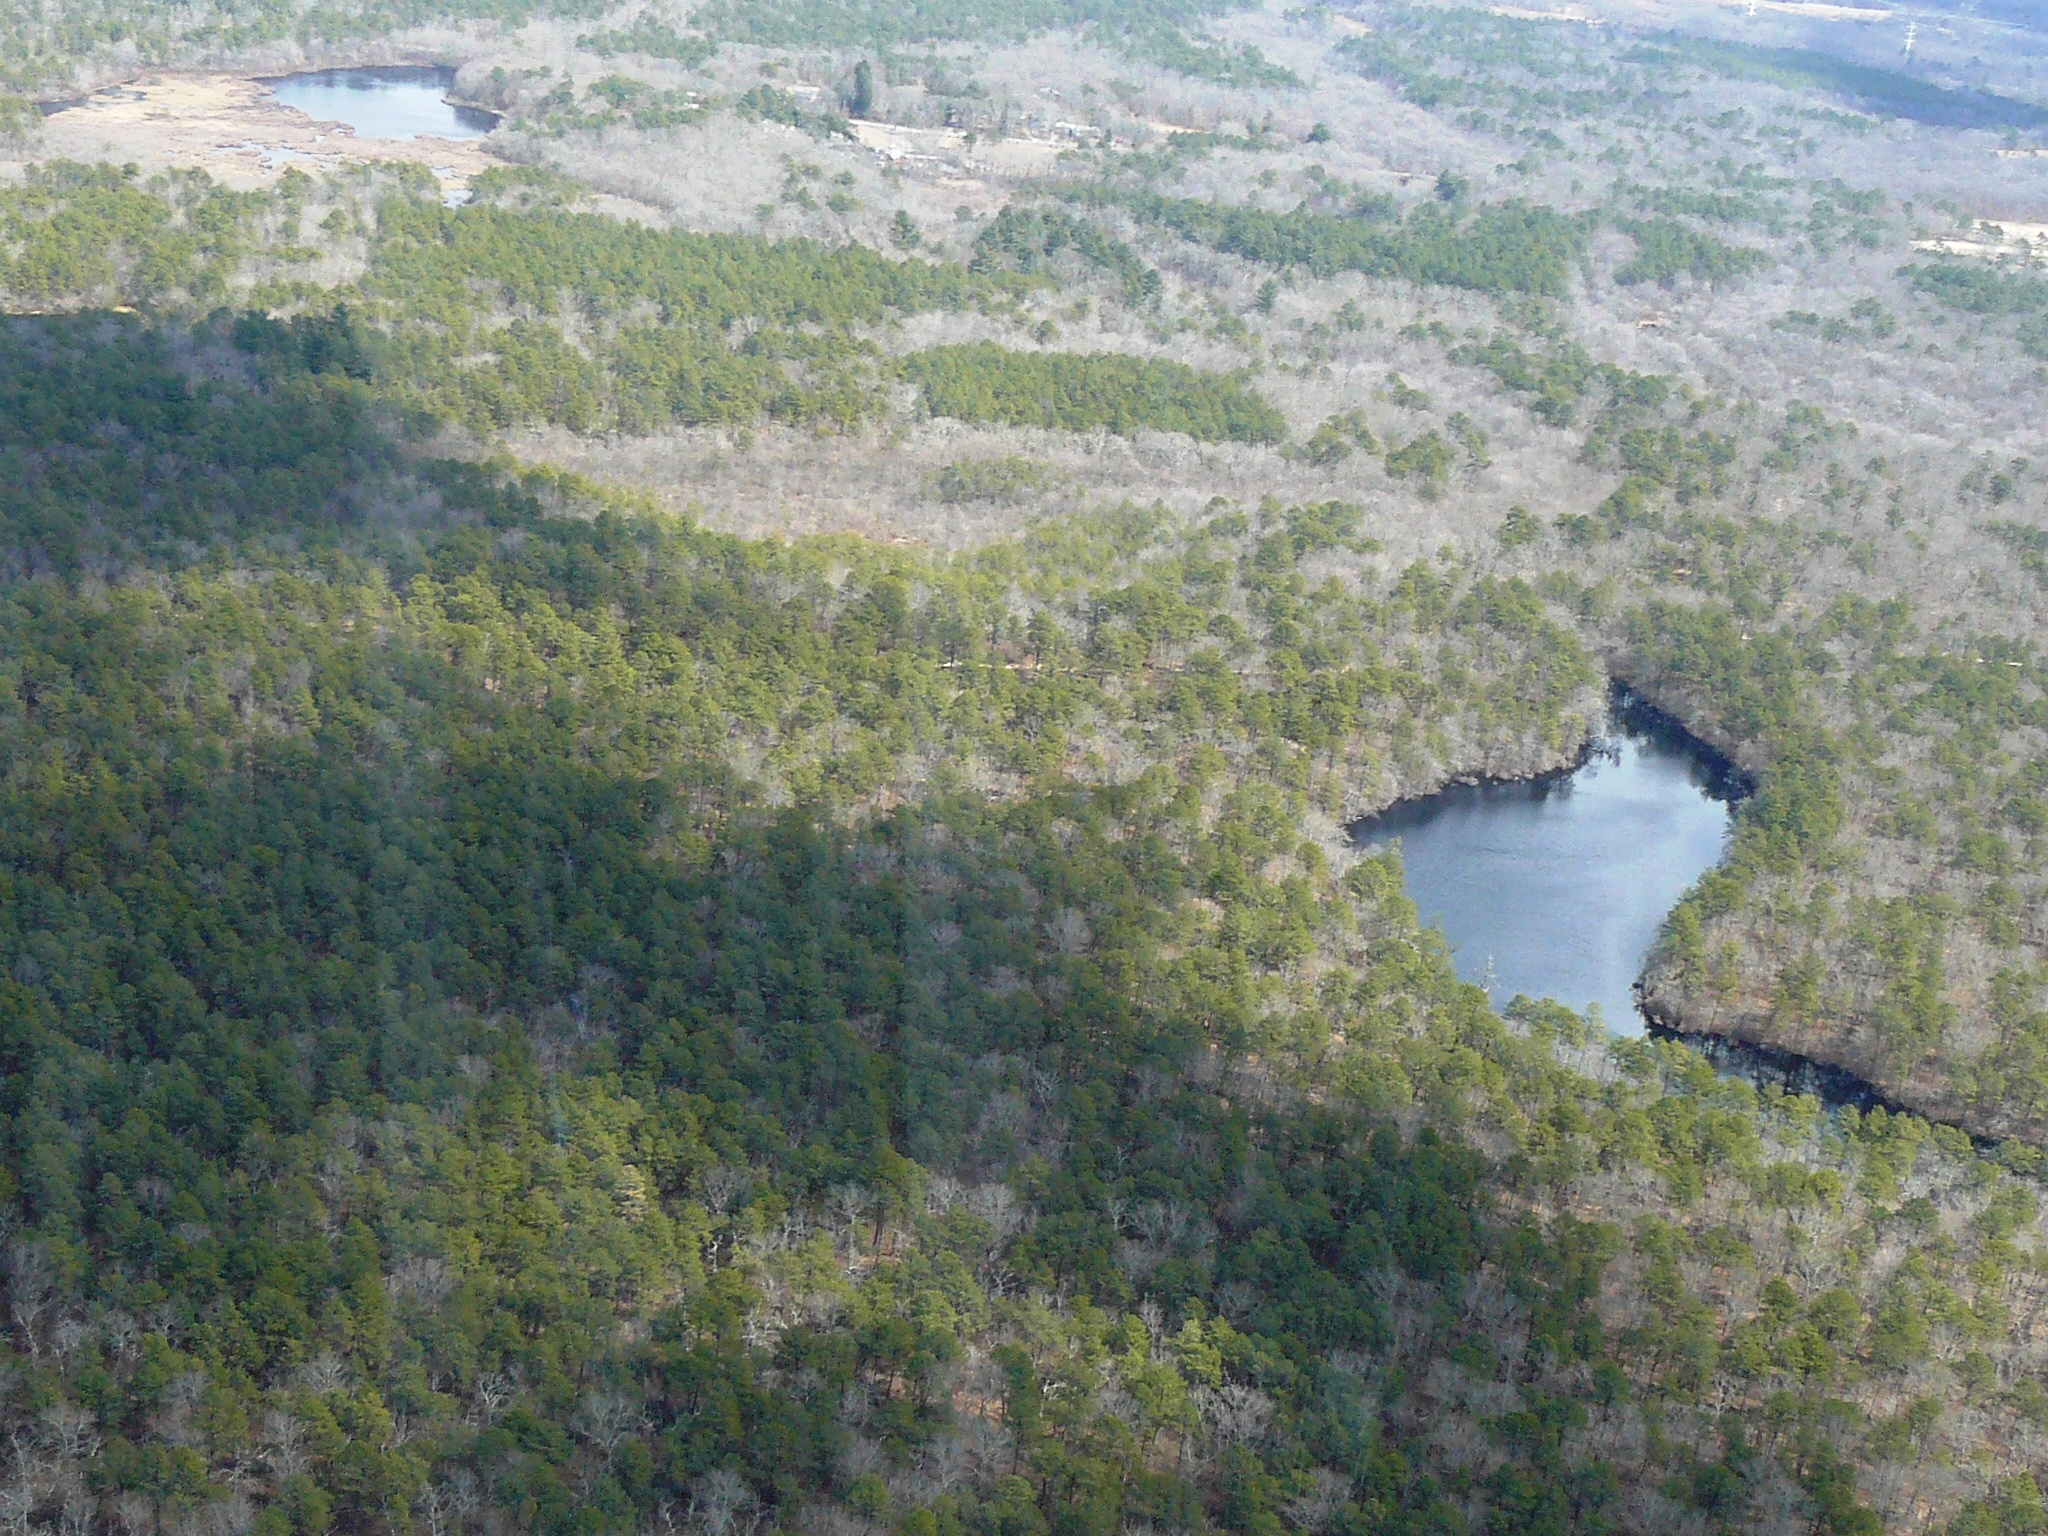 Aerial view of the Pine Barrens forest and a lake